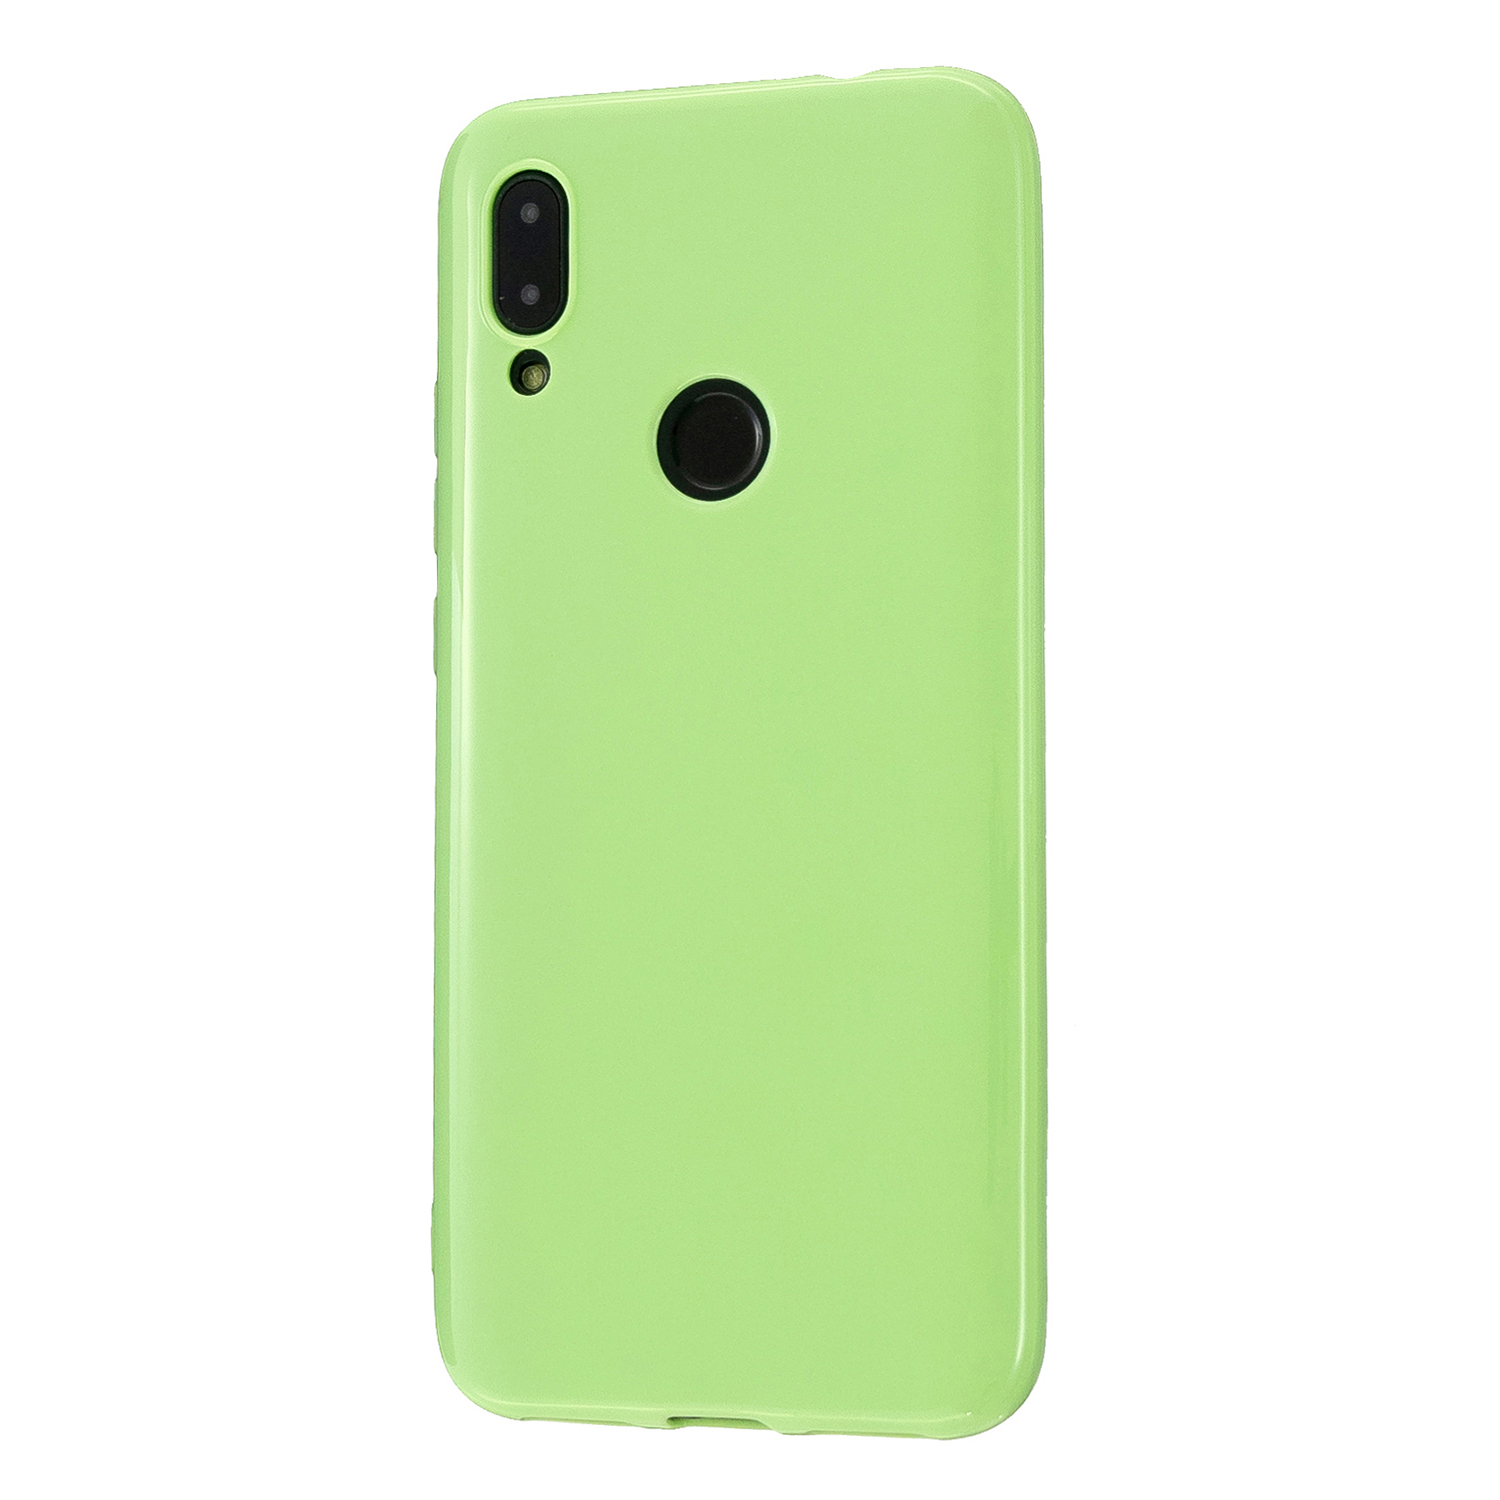 For Redmi 7/7A/Note 7/Note 7 Pro Cellphone Cover Overall Protection Soft TPU Anti-Slip Anti-Scratch Phone Case Fluorescent green